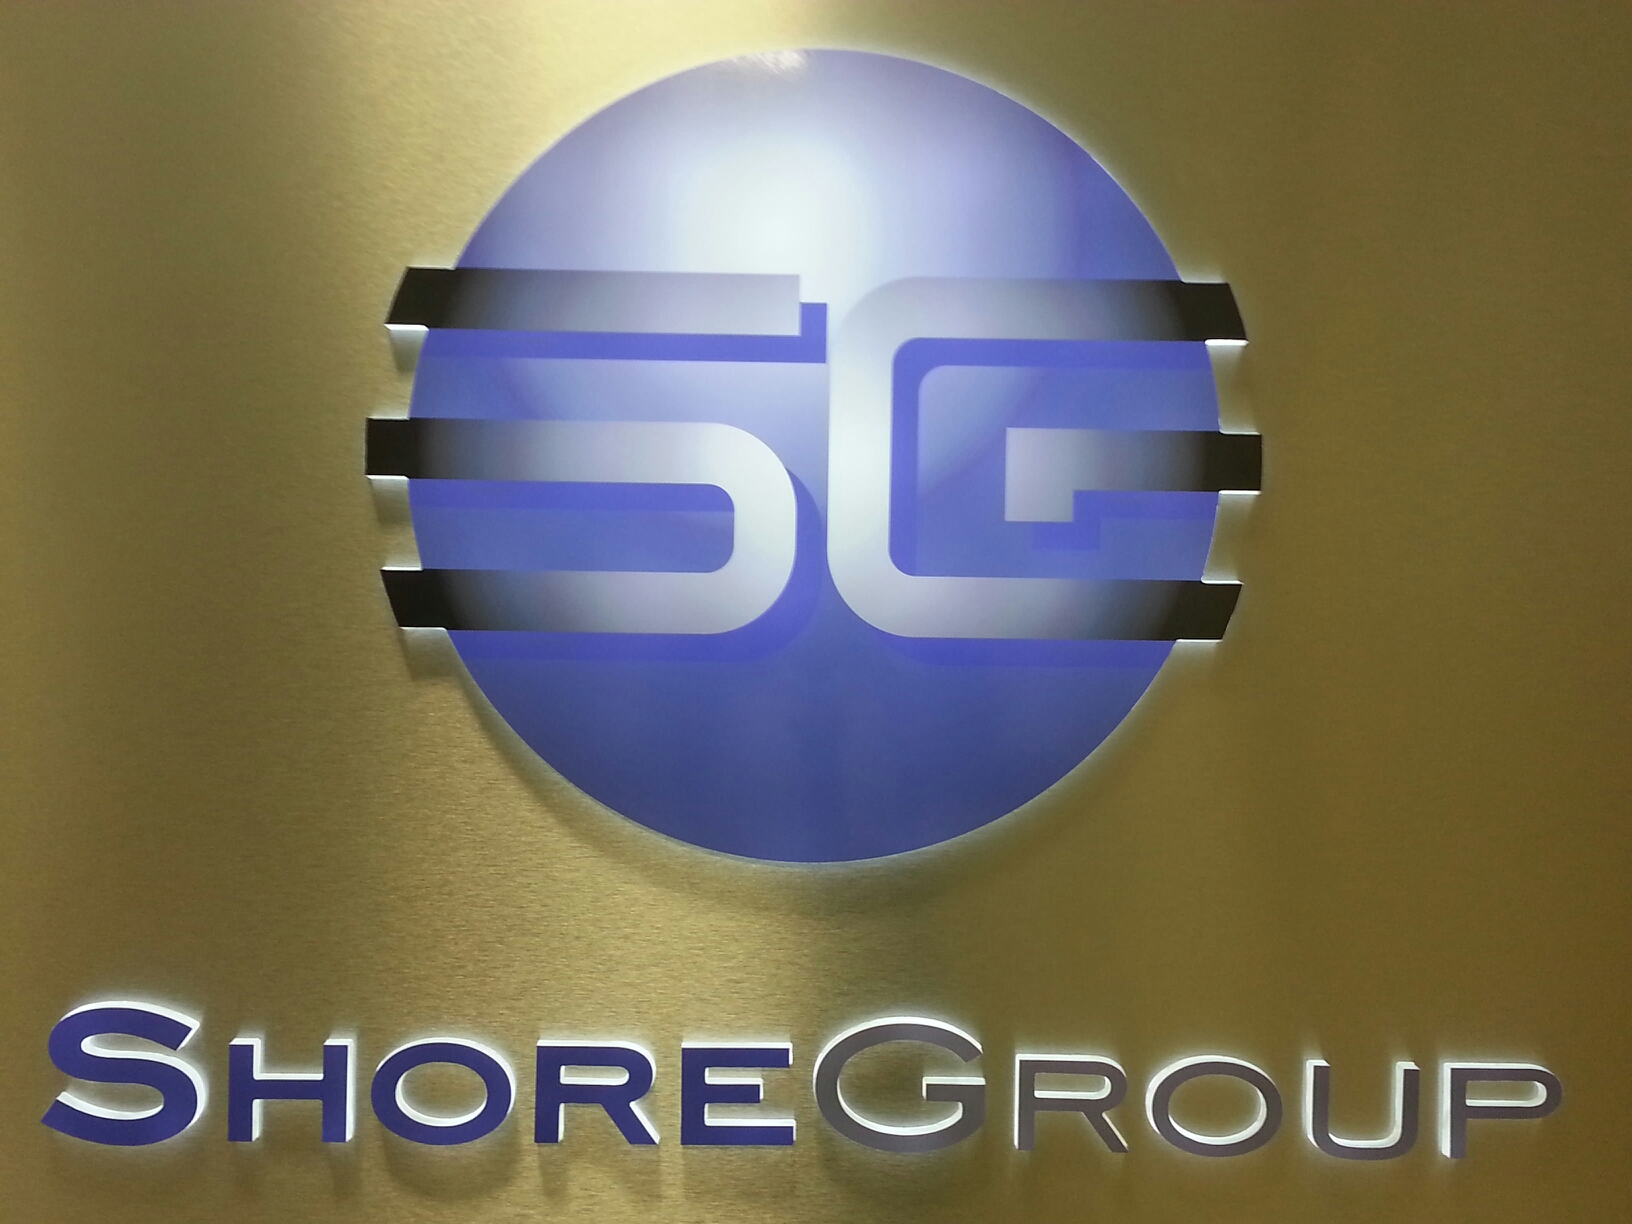 Custom signs, Syracuse NY, LED Illuminated signs, Syracuse NY, Shore Group, Syracuse NY, Push through acrylic lit signs, Syracuse NY :: Shore Group - Illuminated sign with push through acrylic - Liverpool NY :: Syracuse NY, Central NY, Upstate NY